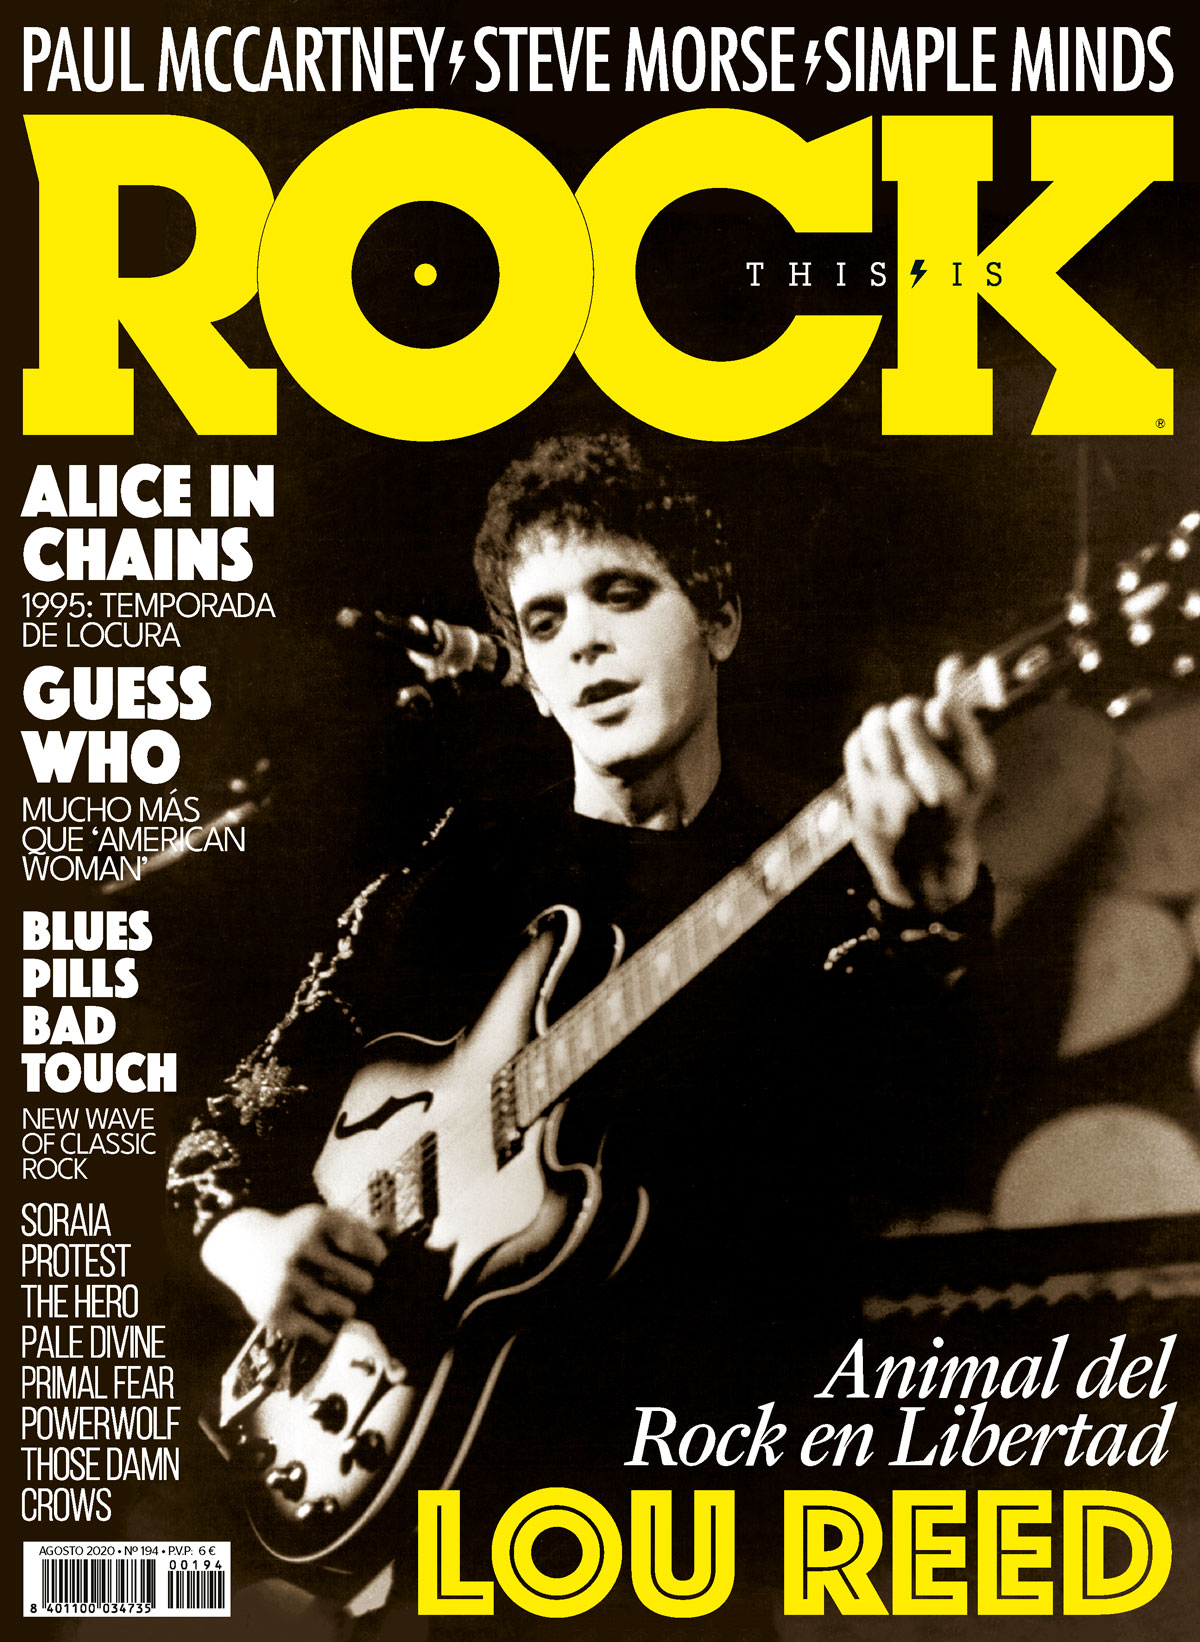 TIR194 Lou Reed El Animal del Rock en Libertad La Revista Toda la Gente del Rock Tu Magazine de Classic Rock Hard Rock Heavy Metal Prog Rock Blues Rock